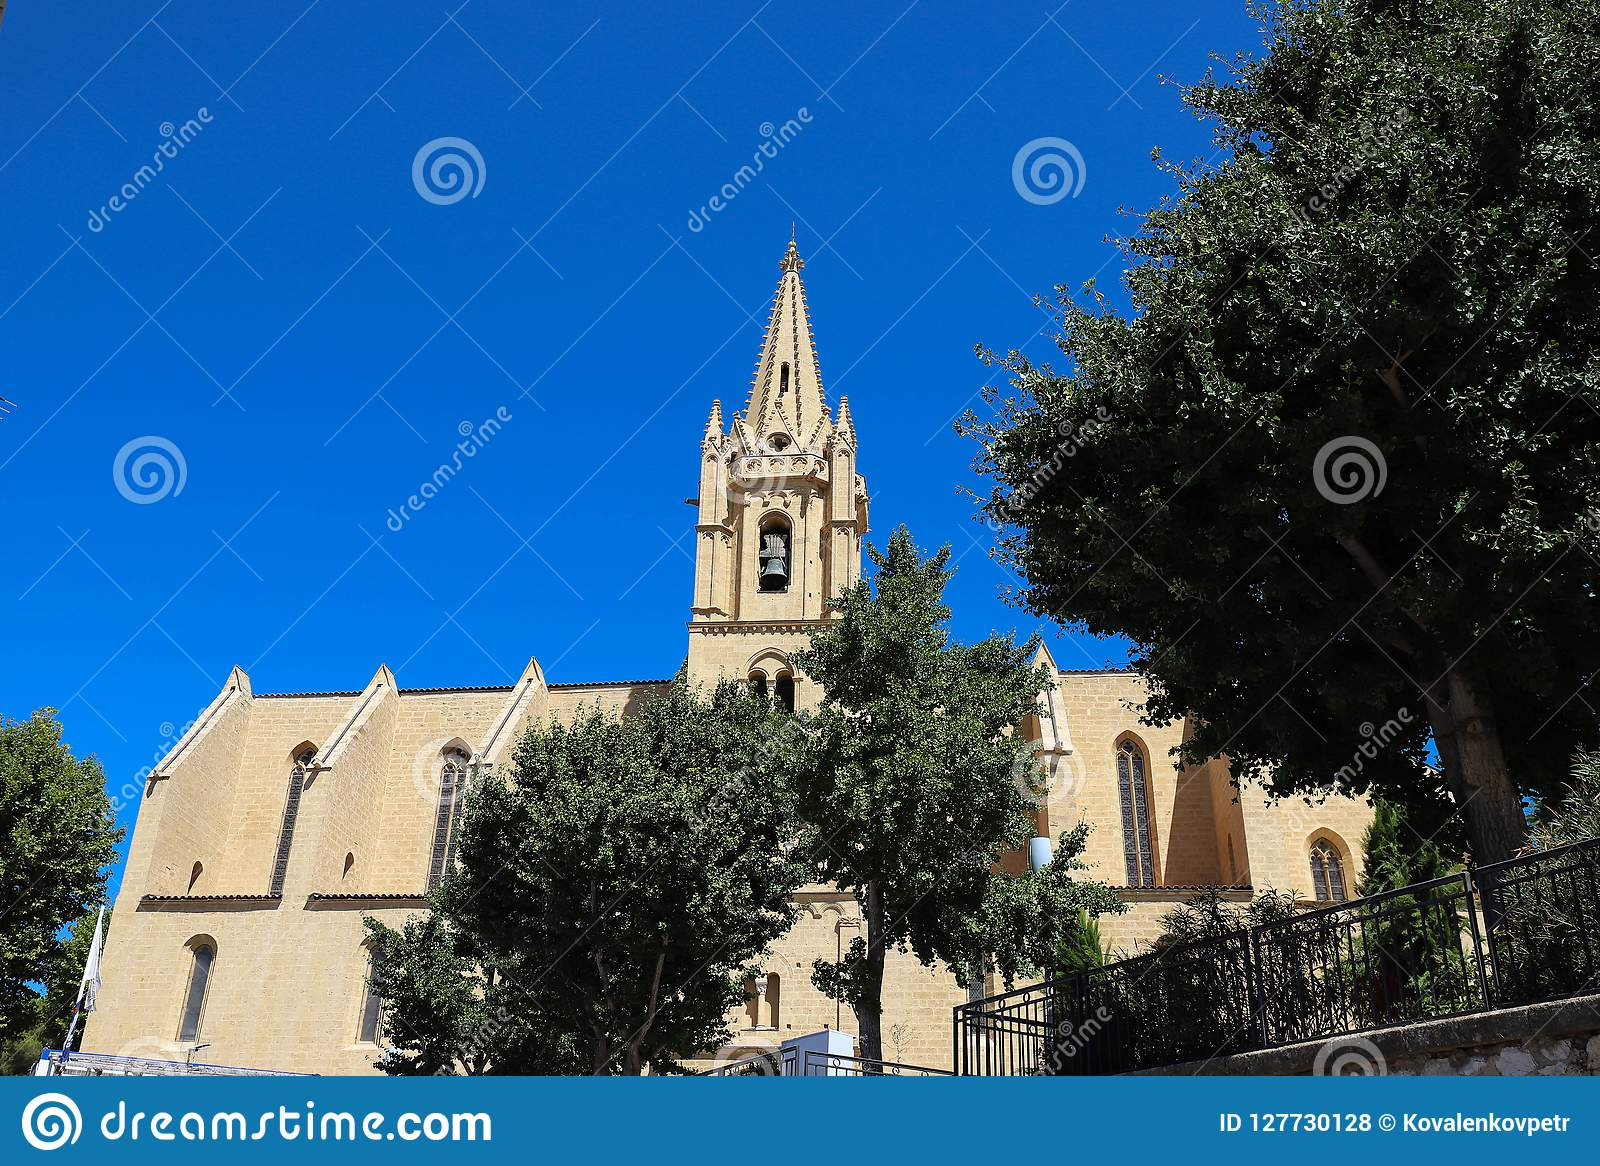 The Collegial Church Saint Laurent Is An Excellent Example Of France S Meridional Gothic Style Salon De Provence Stock Photo Image Of Gordes Architecture 127730128